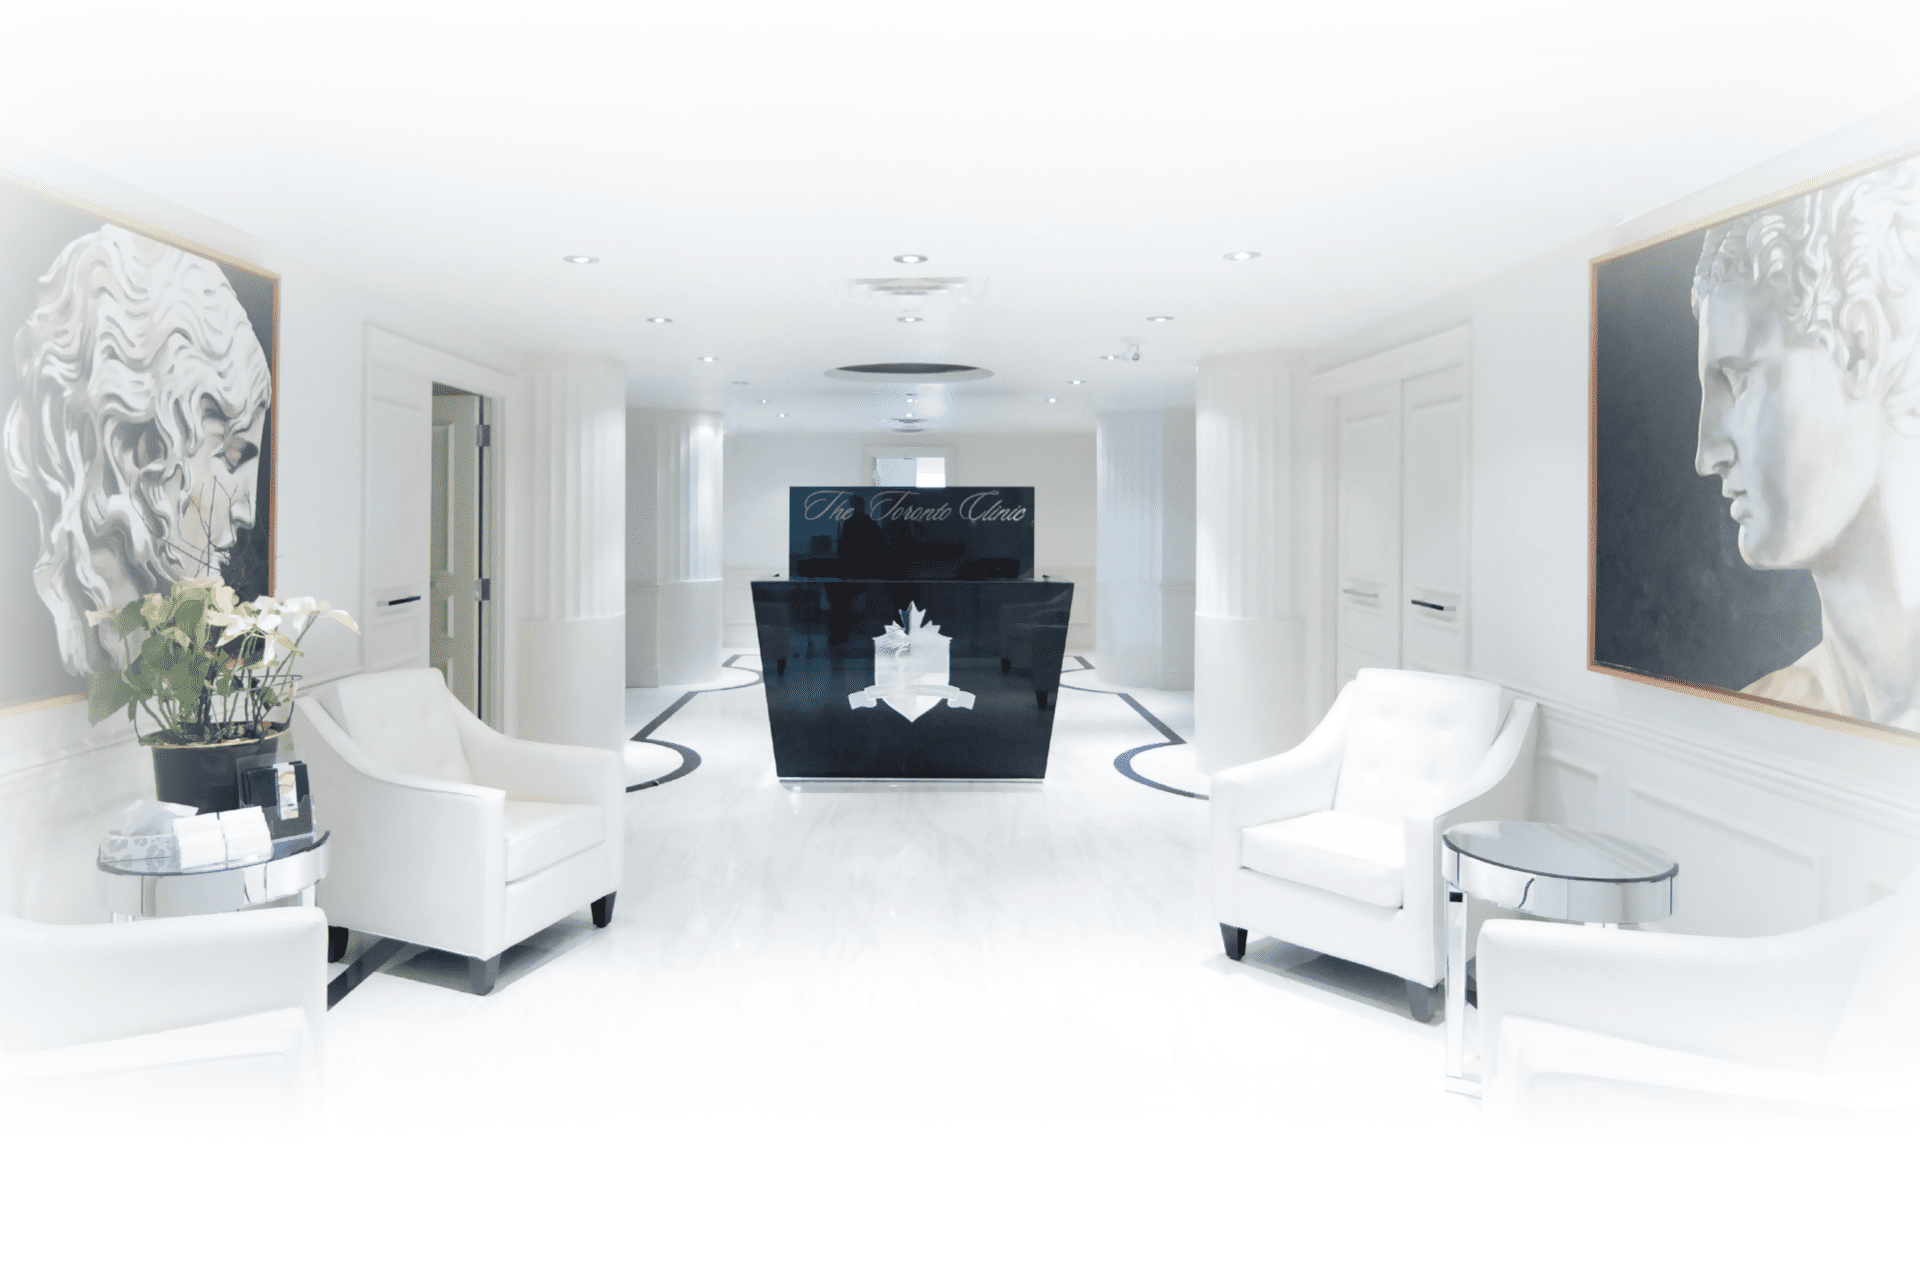 A Concierge for your Health – Corporate Wellness in Bloor-Yorkville